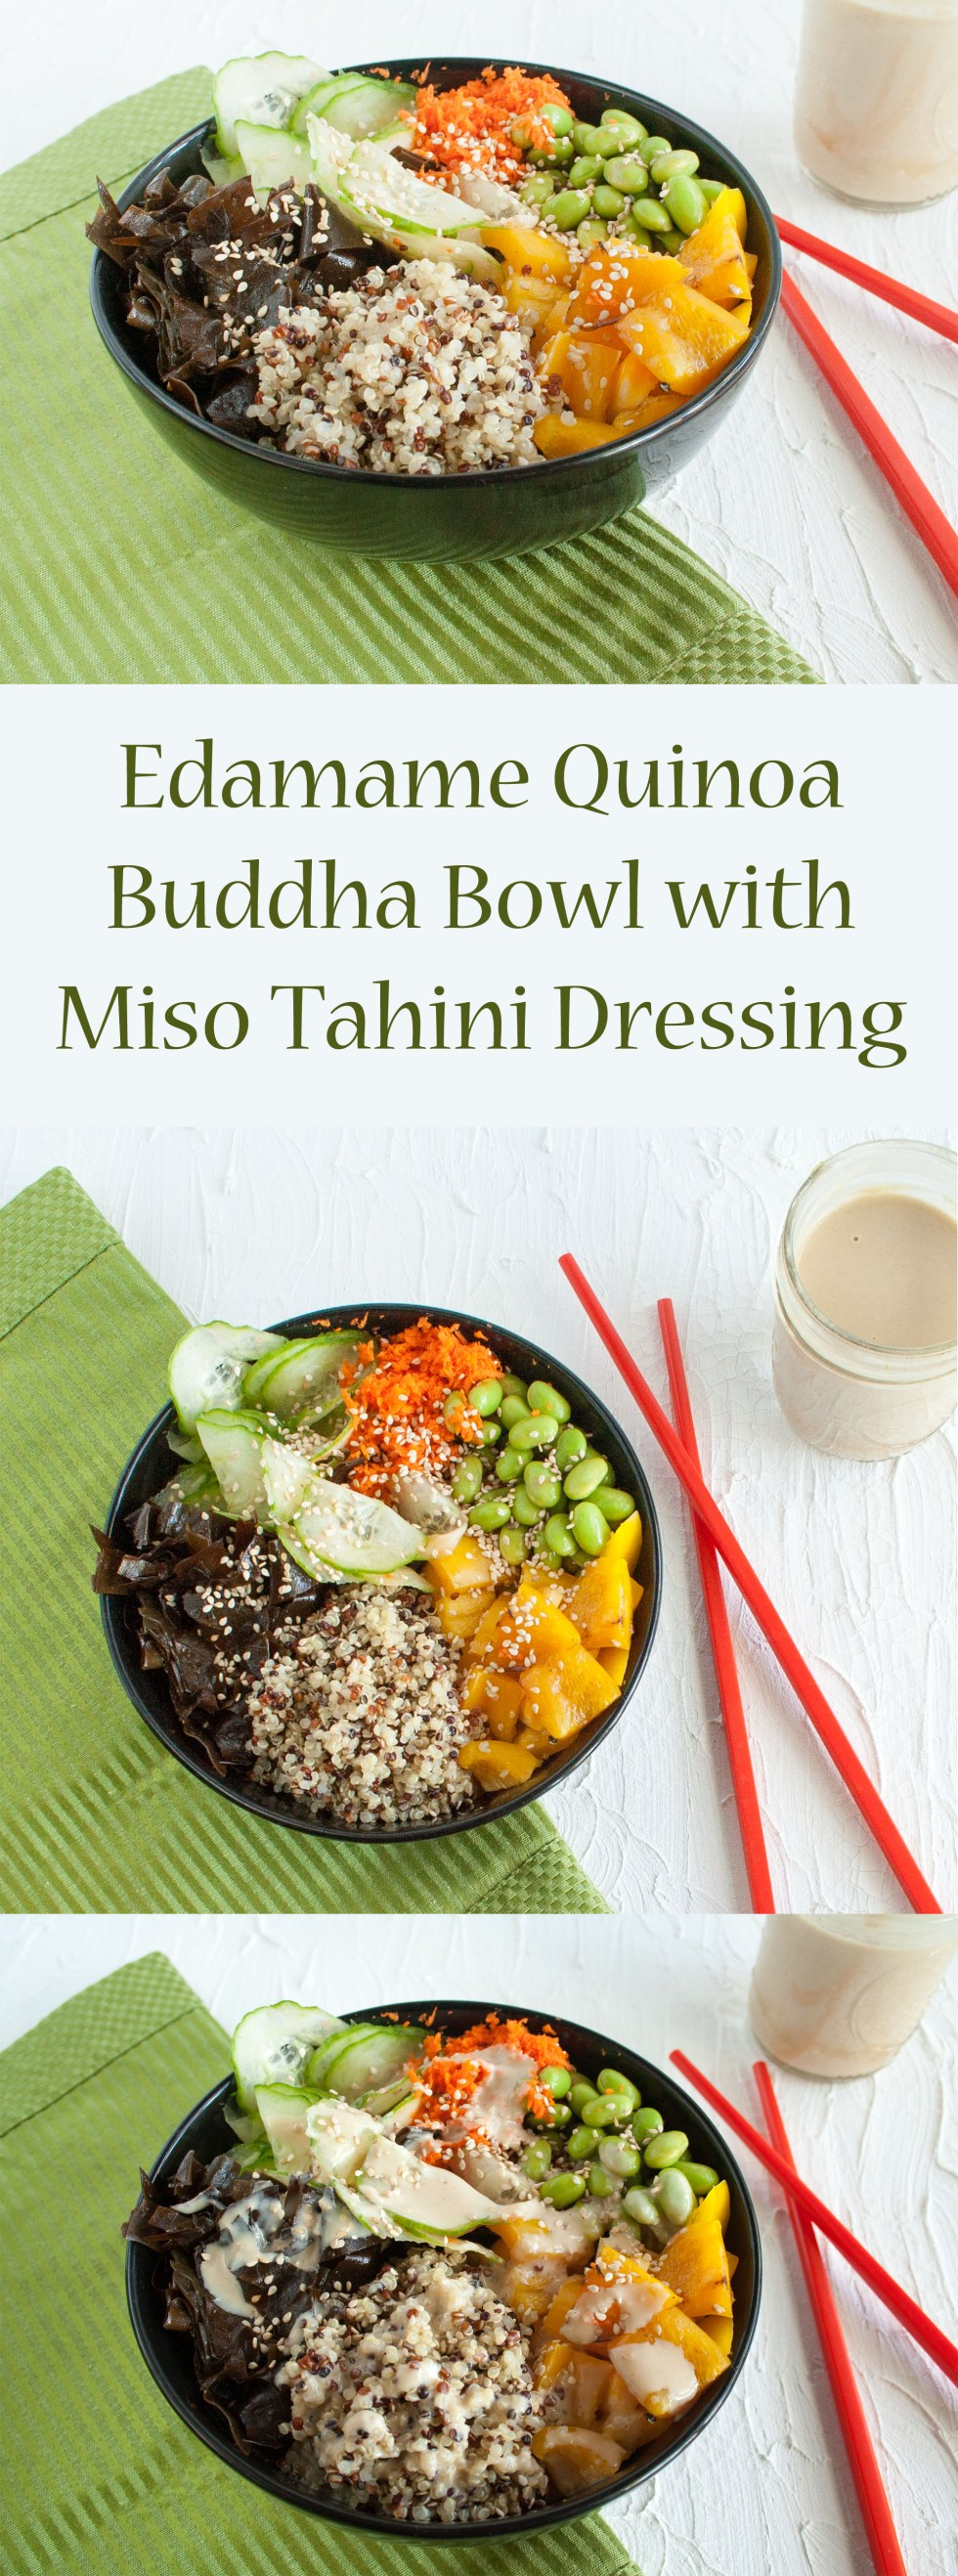 Edamame Quinoa Buddha Bowl with Miso Tahini Dressing (vegan, gluten free) - This healthy Asian inspired bowl is a complete meal.